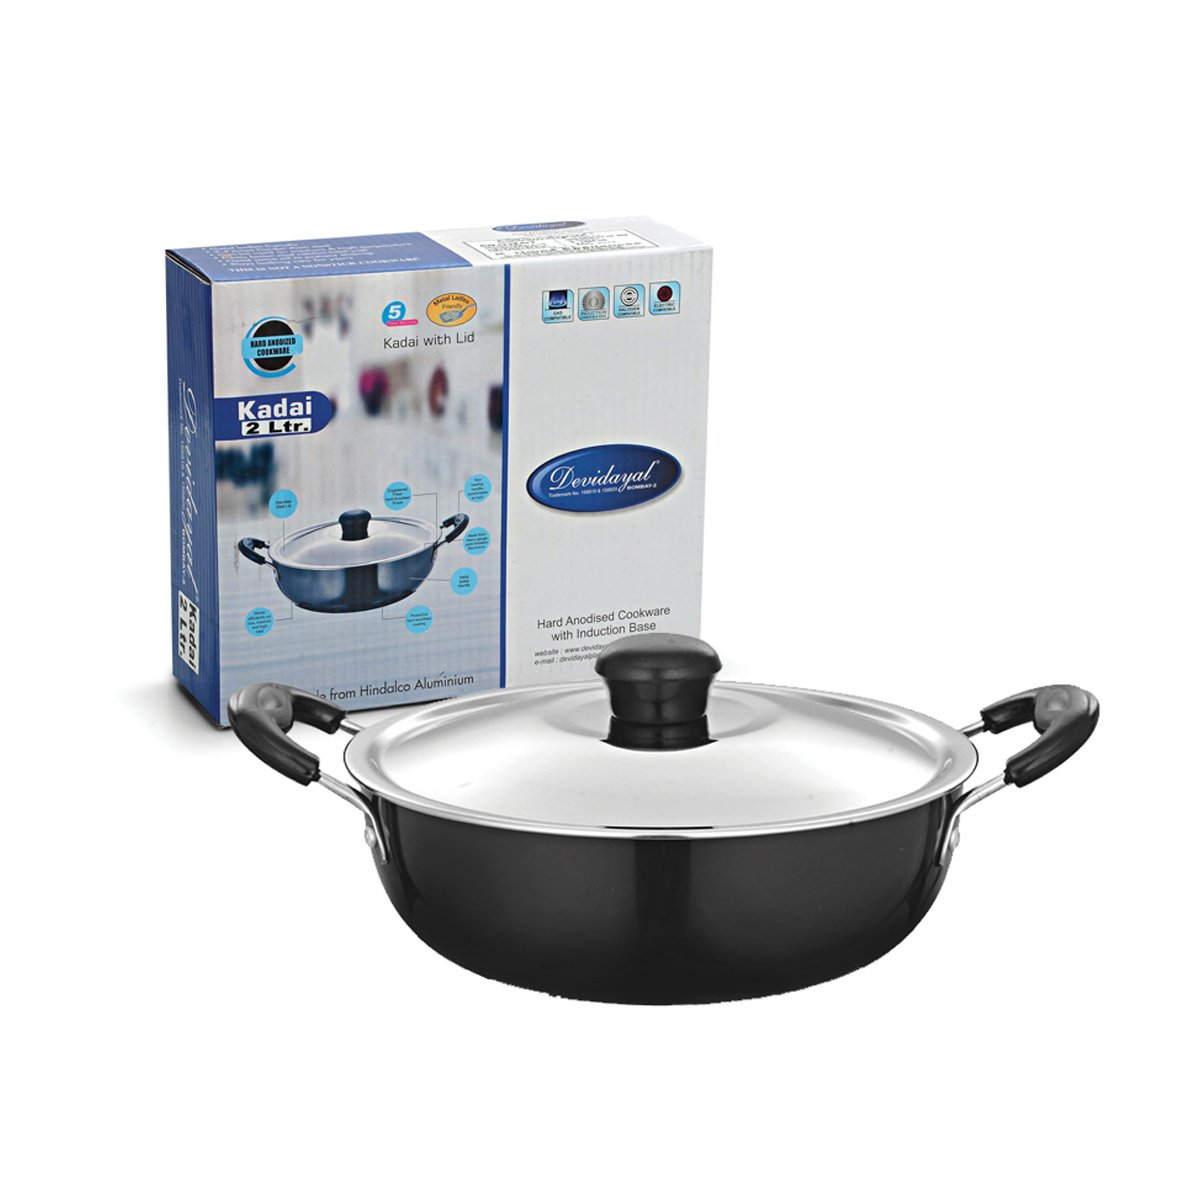 DeviDayal l Induction Base Hard Anodized Deep Kadai With Lid-(2 Liter)